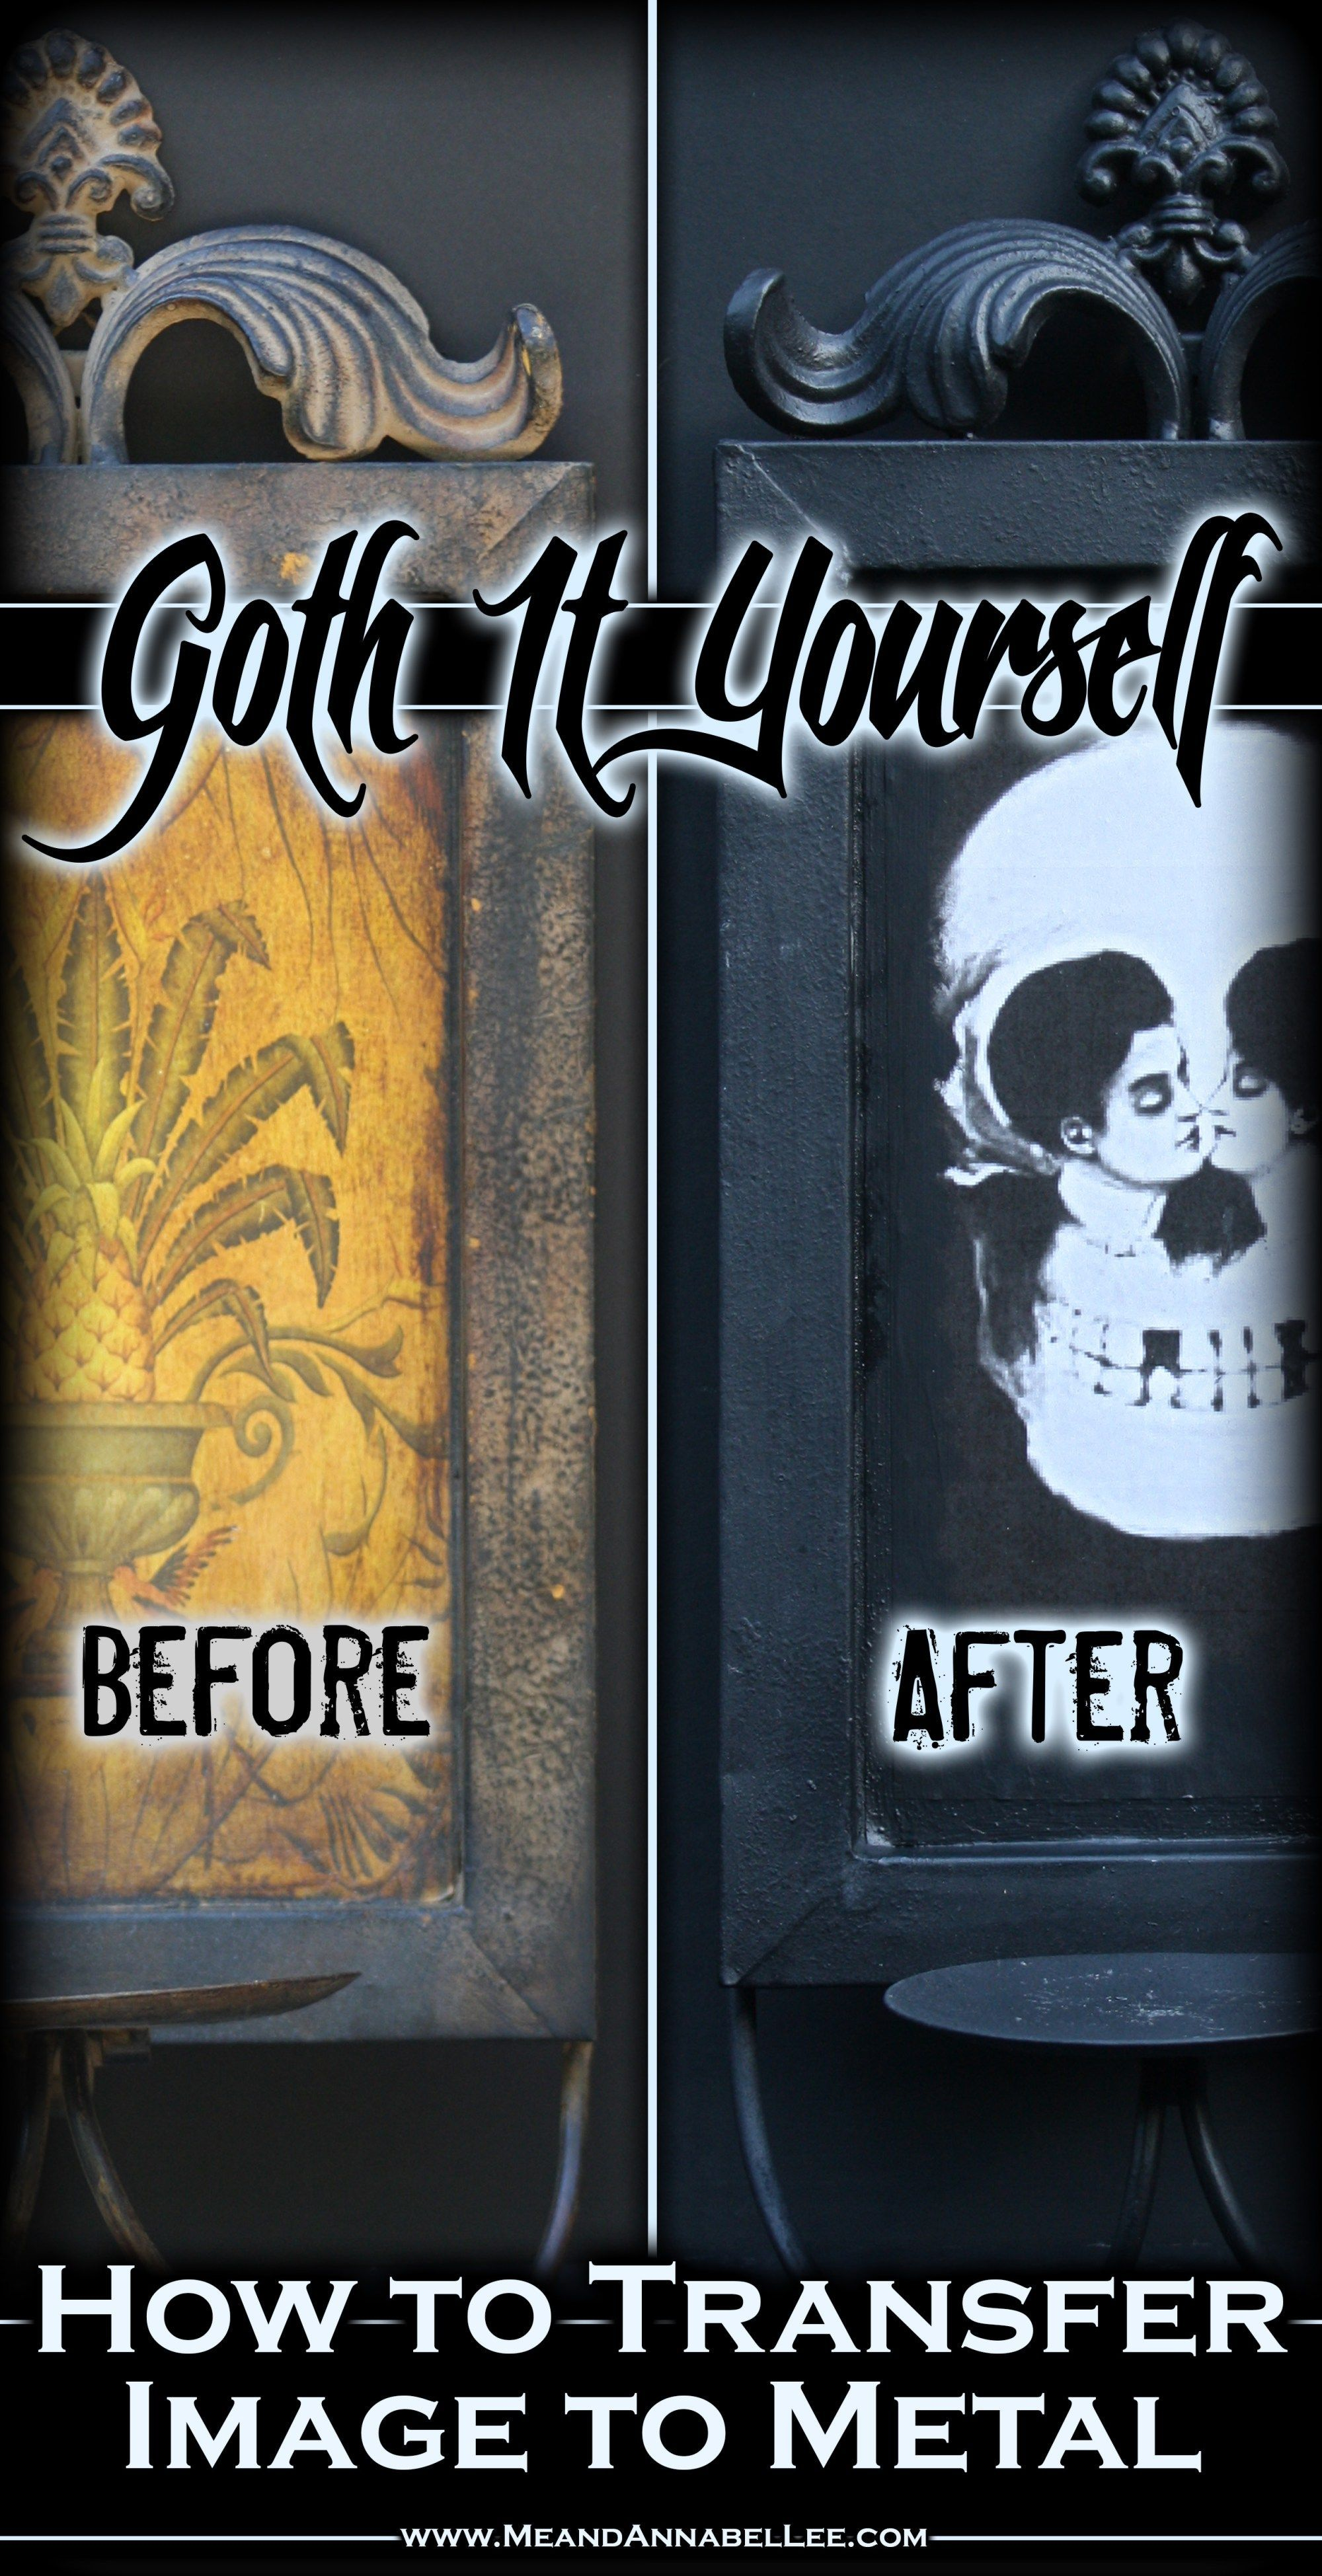 DIY Metamorphic Skull Wall Art / Candle Sconce - How to Transfer an Image to Metal using Mod Podge - Gothic Home Decor - Goth It Yourself - www.MeandAnnabelL... - Blog for all things Dark Gothic Victorian & Unusual #style #shopping #styles #outfit #pretty #girl #girls #beauty #beautiful #me #cute #stylish #photooftheday #swag #dress #shoes #diy #design #fashion #homedecor